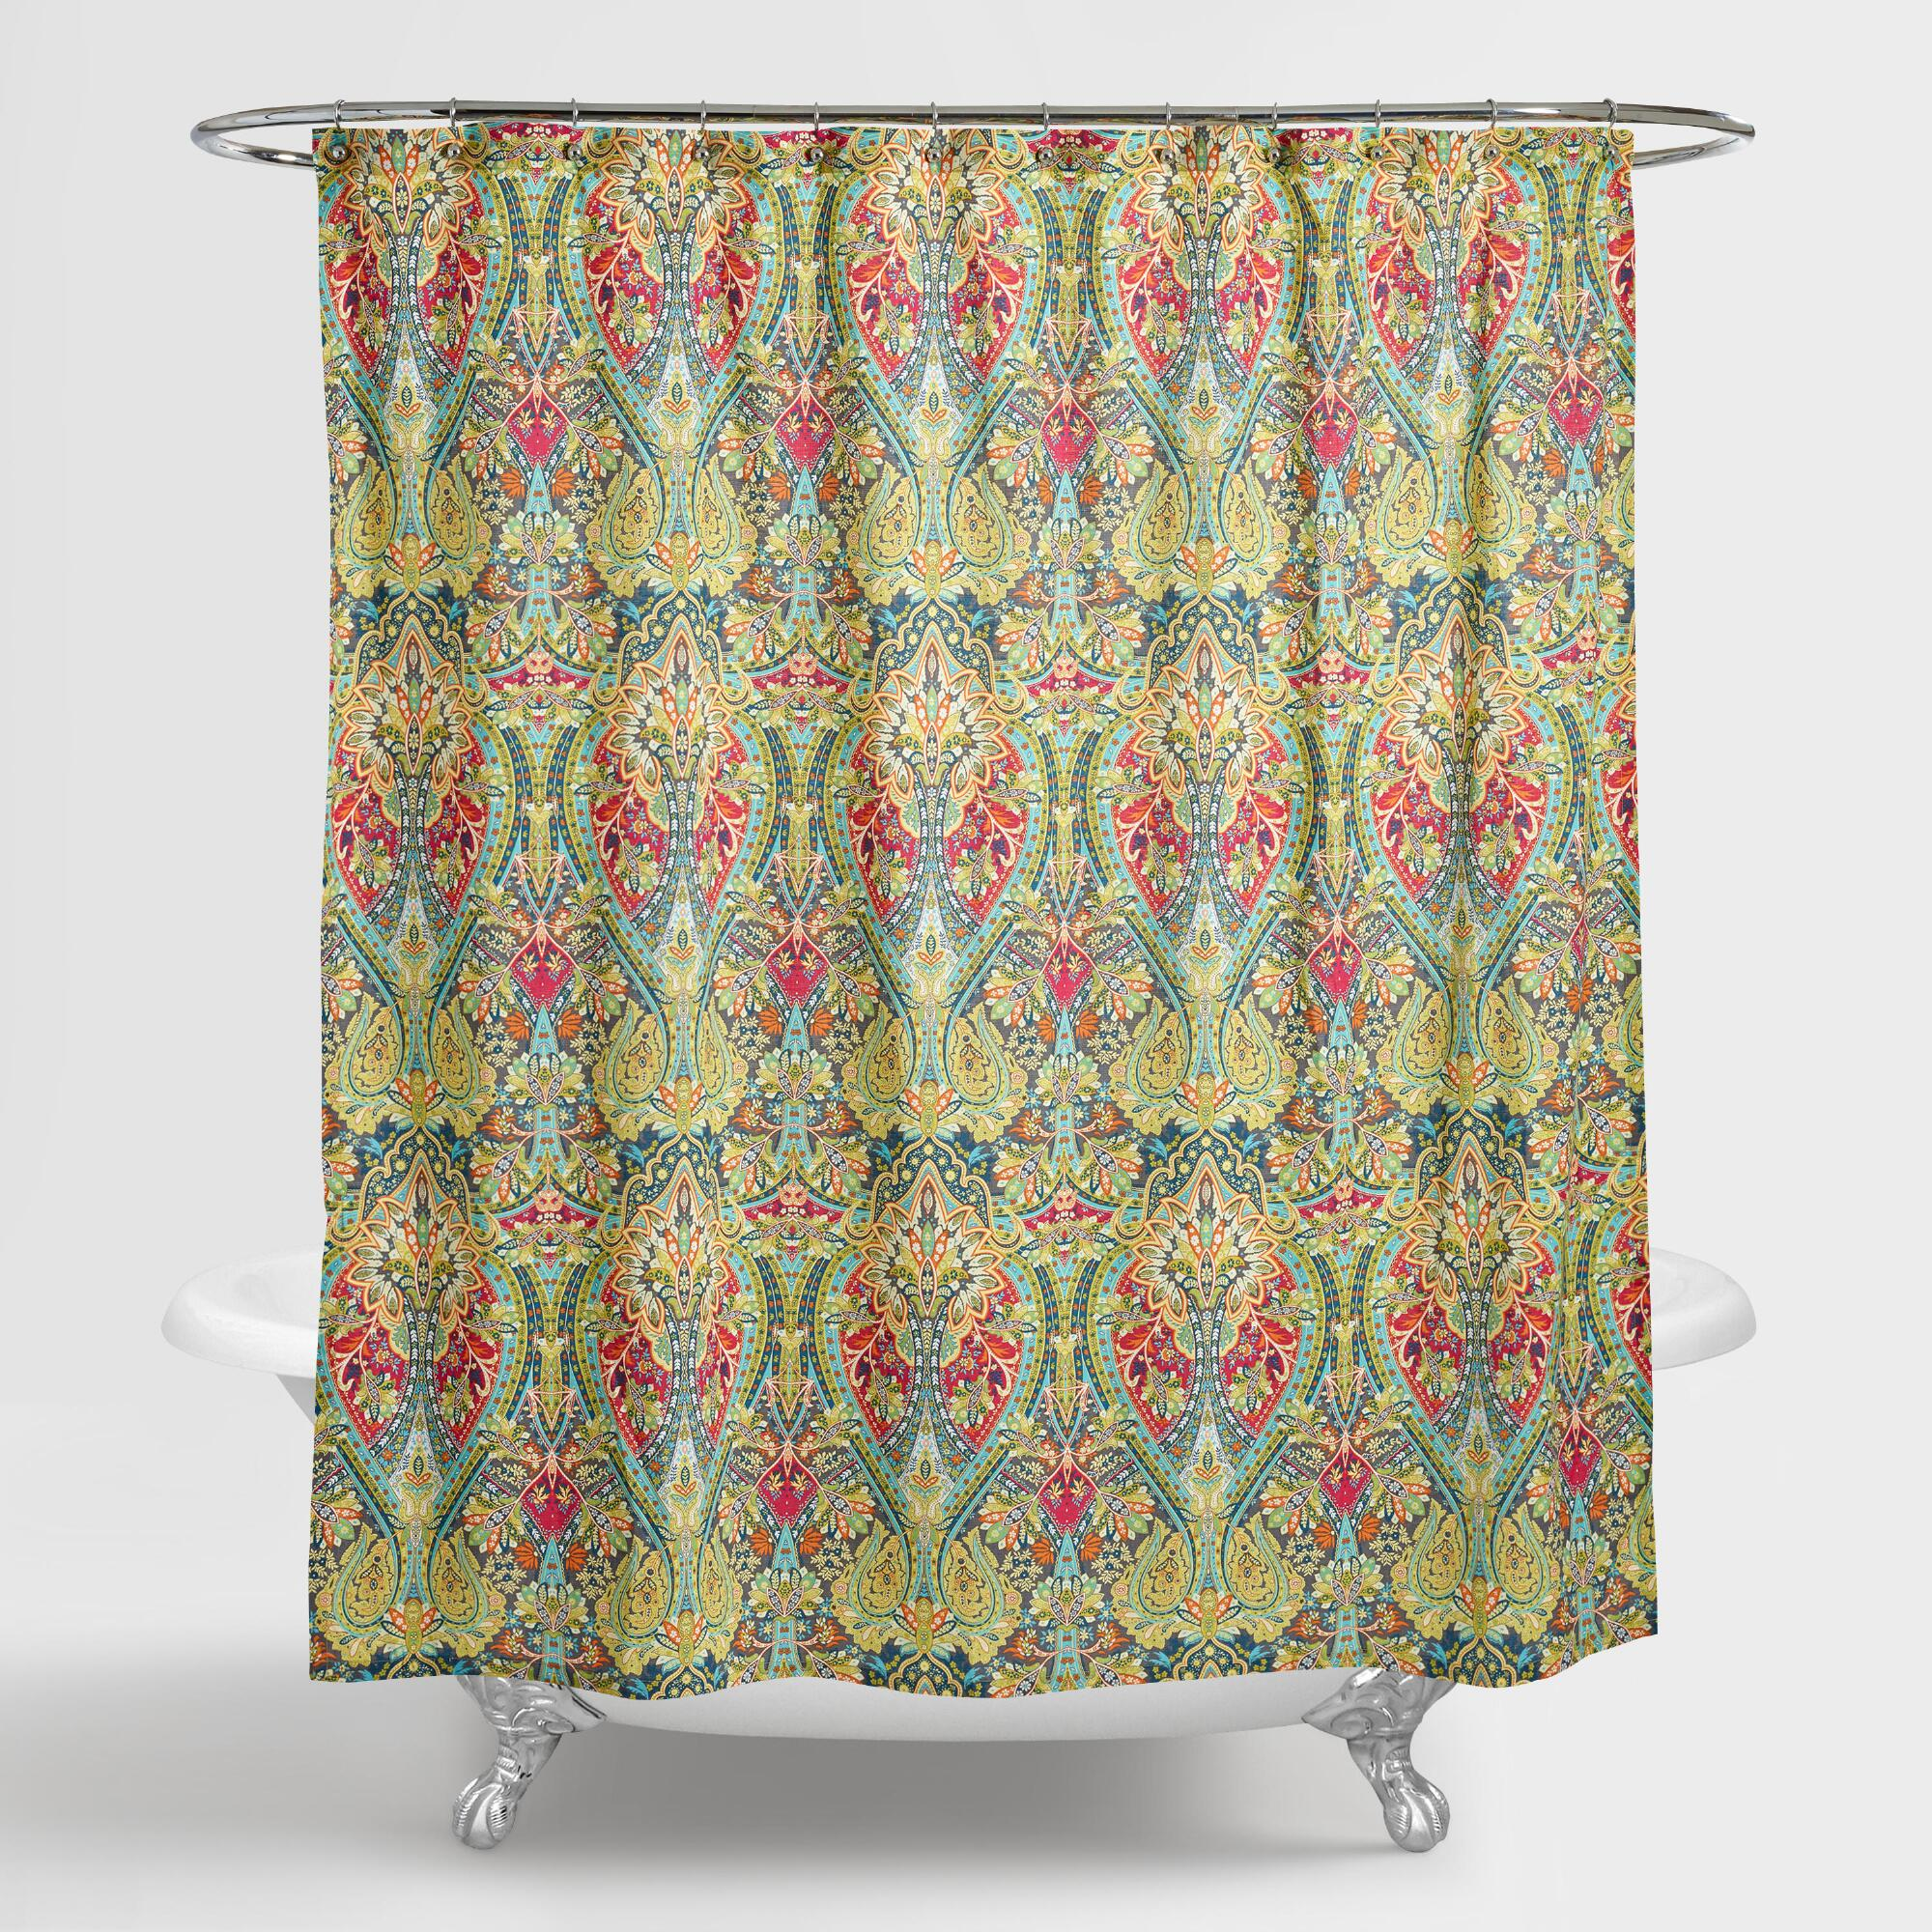 alessia shower curtain - Colorful Shower Curtains